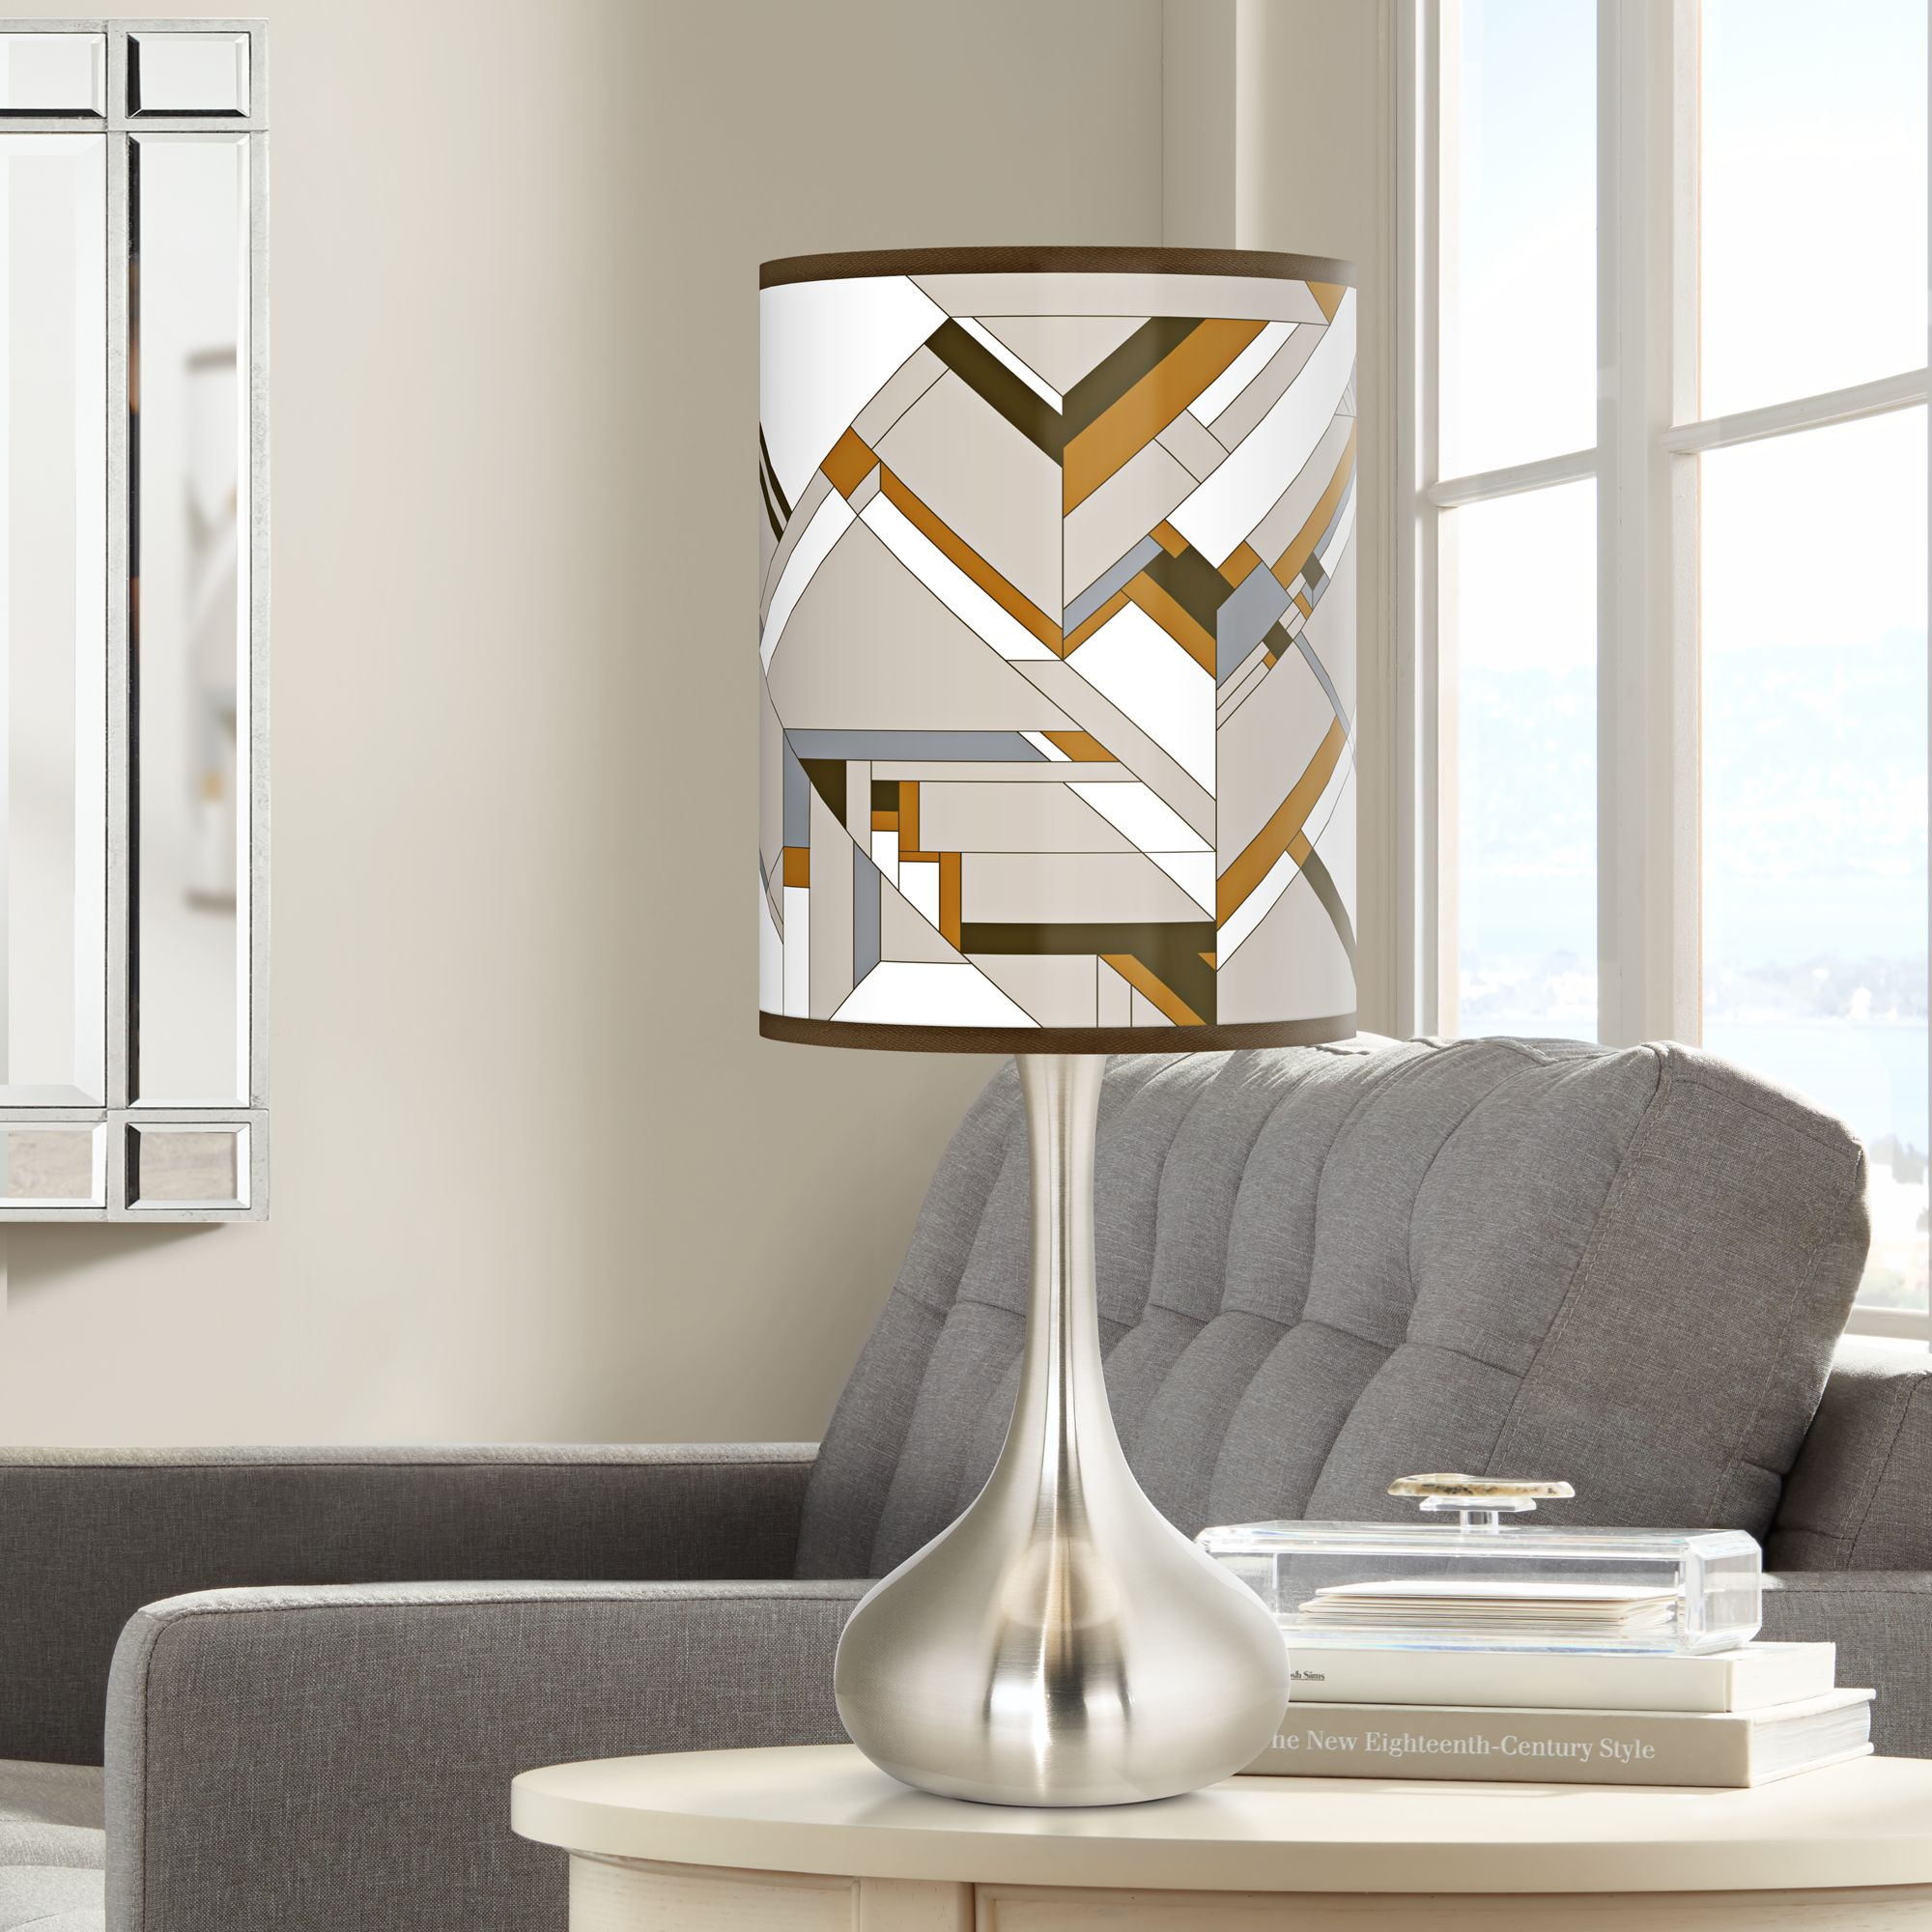 Giclee Glow Craftsman Mosaic Giclee Droplet Table Lamp